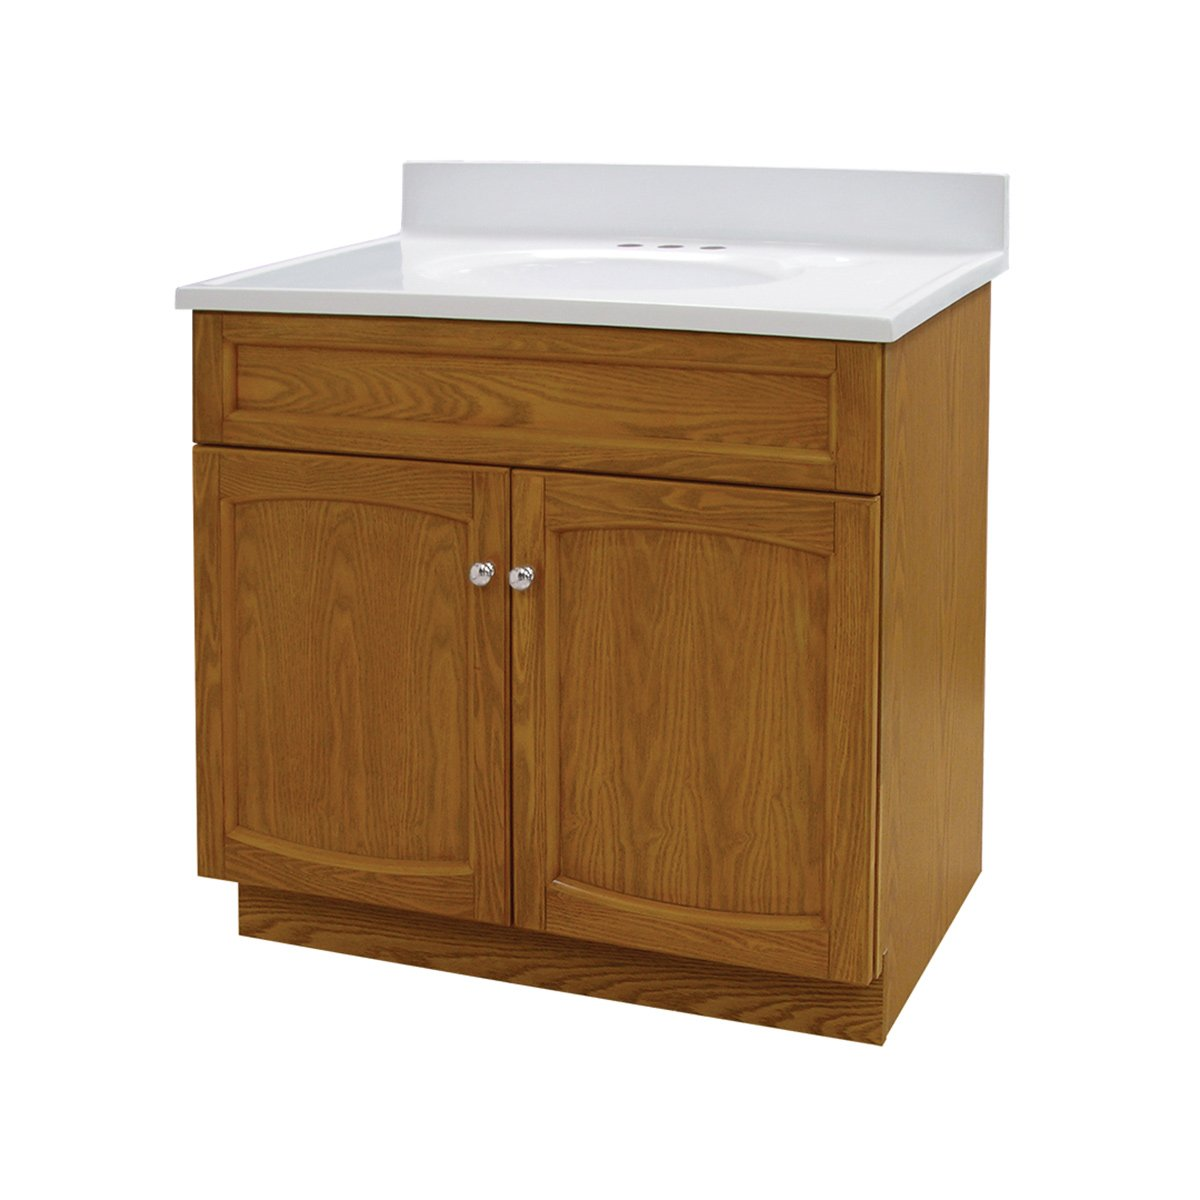 Foremost Heo3018 Heartland Traditional Bathroom Vanity 30 In W X 18